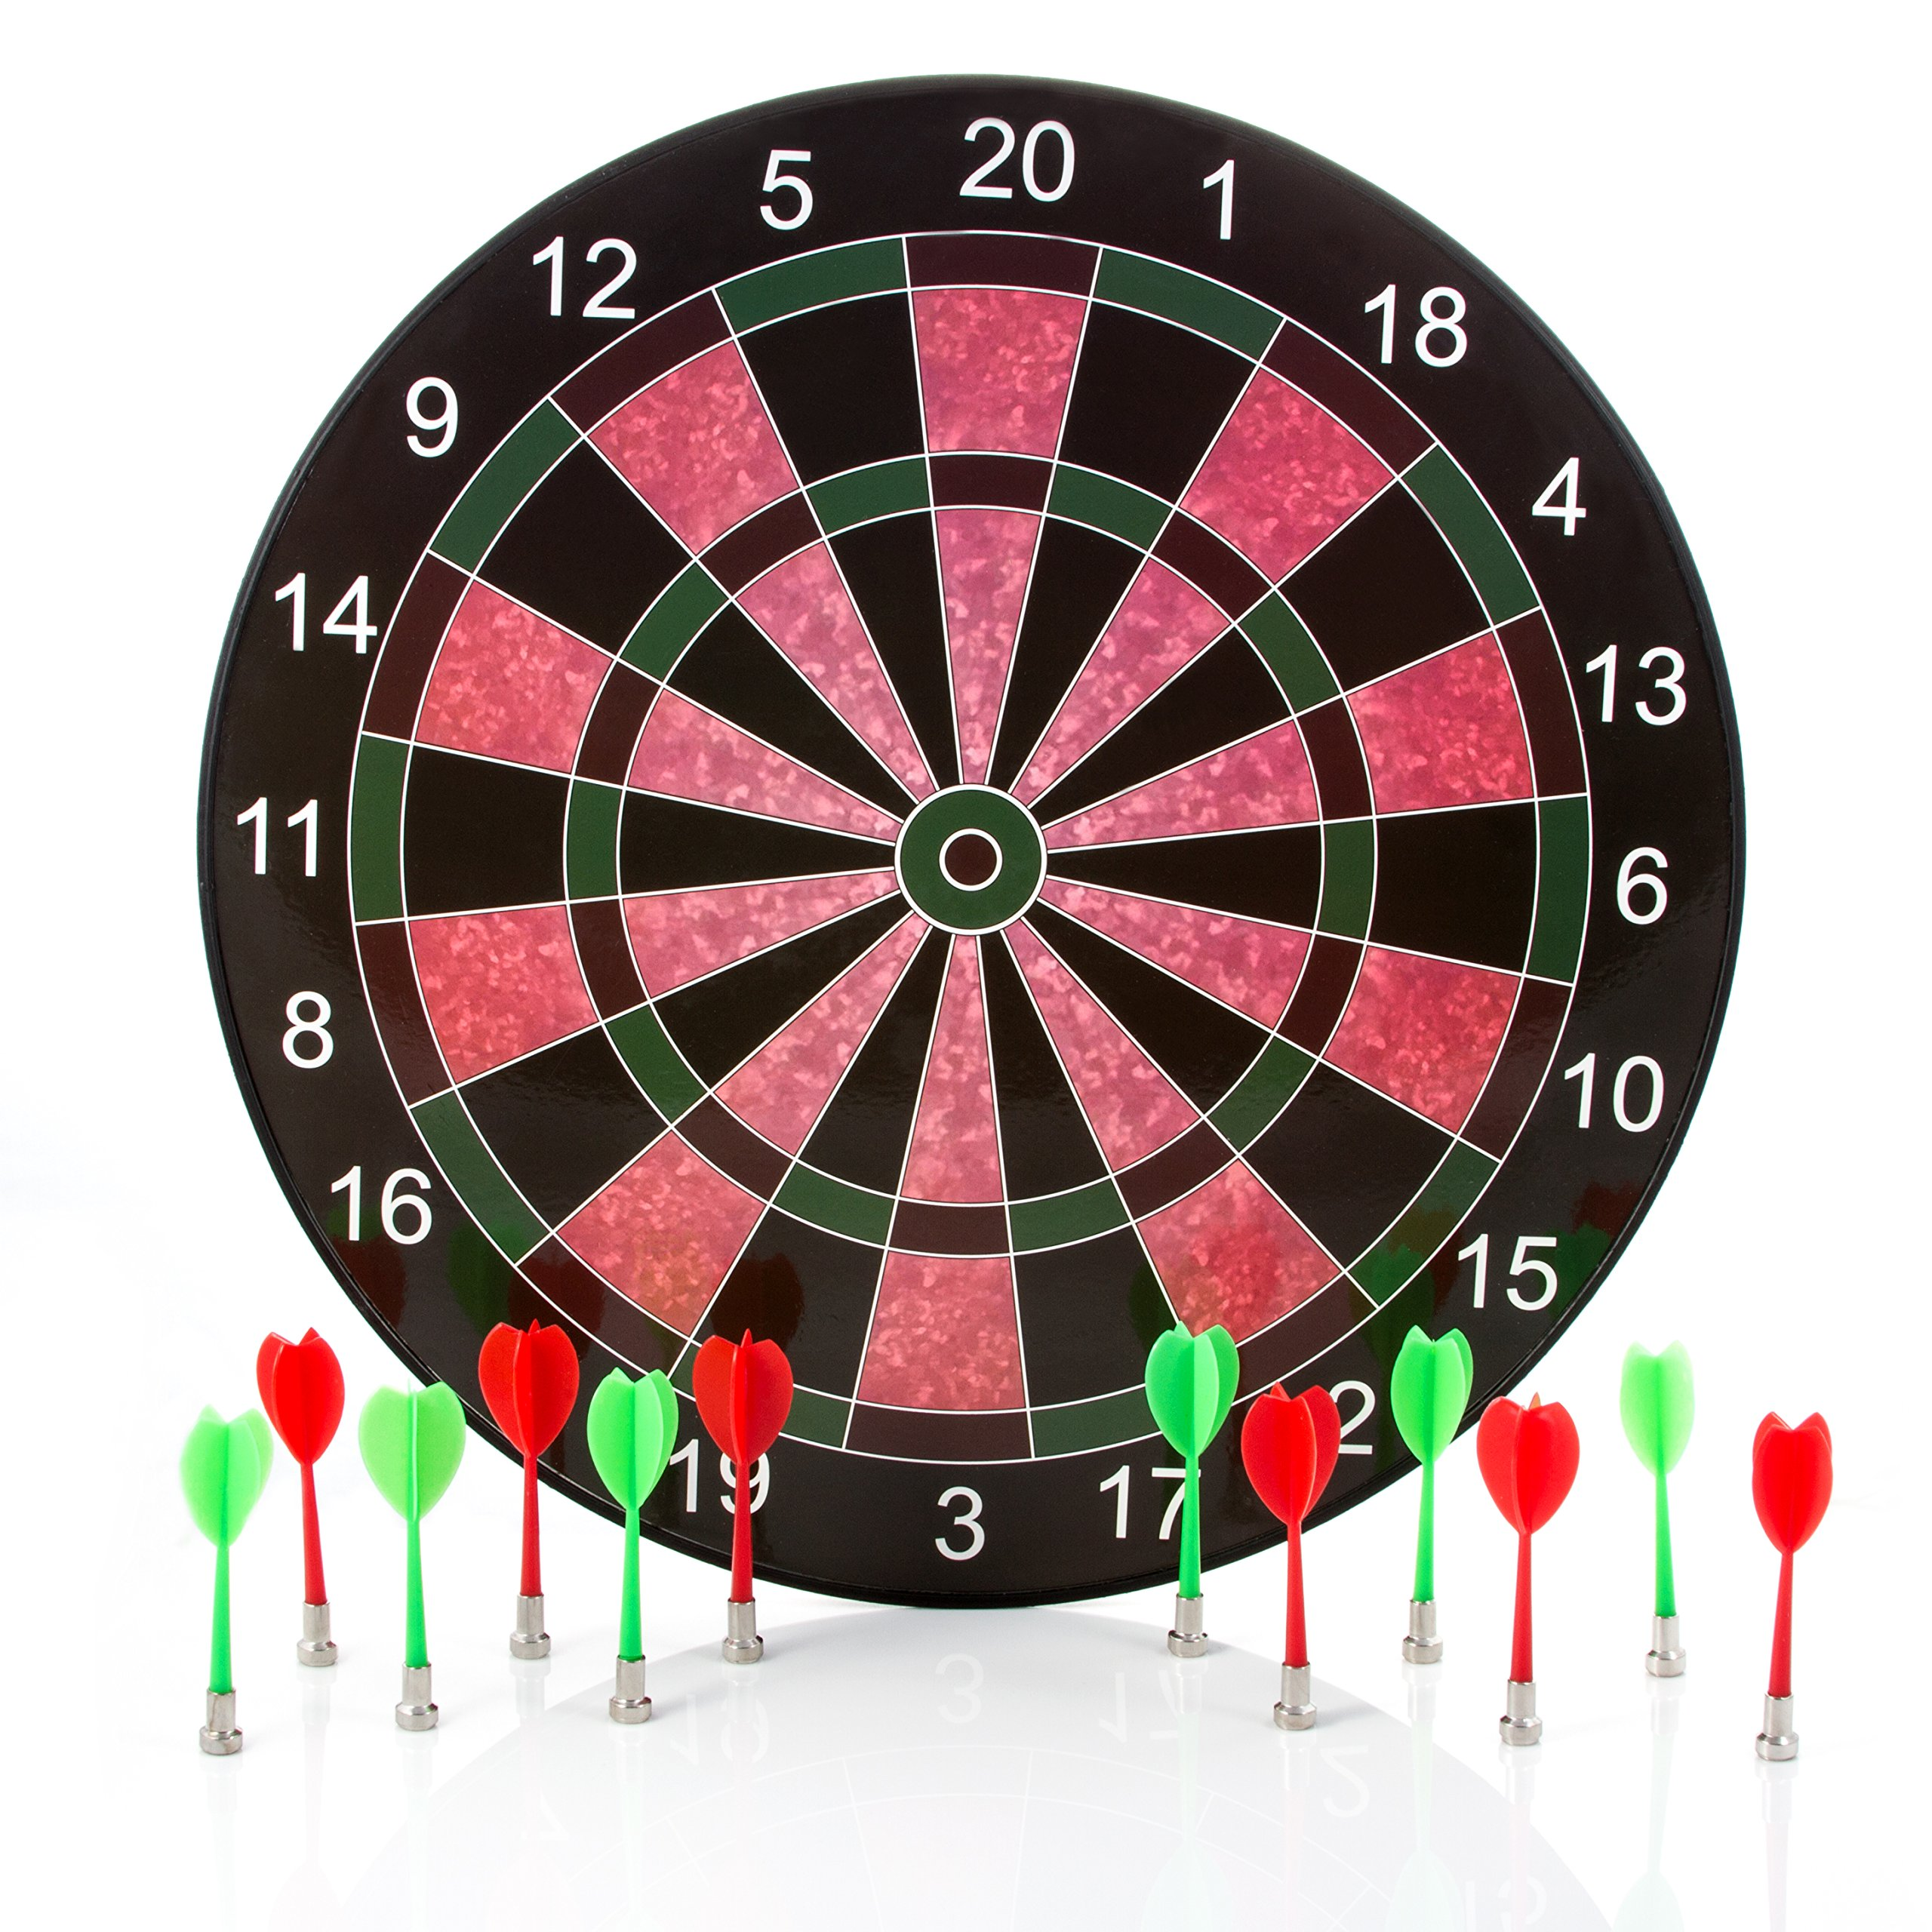 Harbre Magnetic Dart Board 16 Inch Size with 12 Darts 6 Green Darts and 6 Red Darts by Harbre